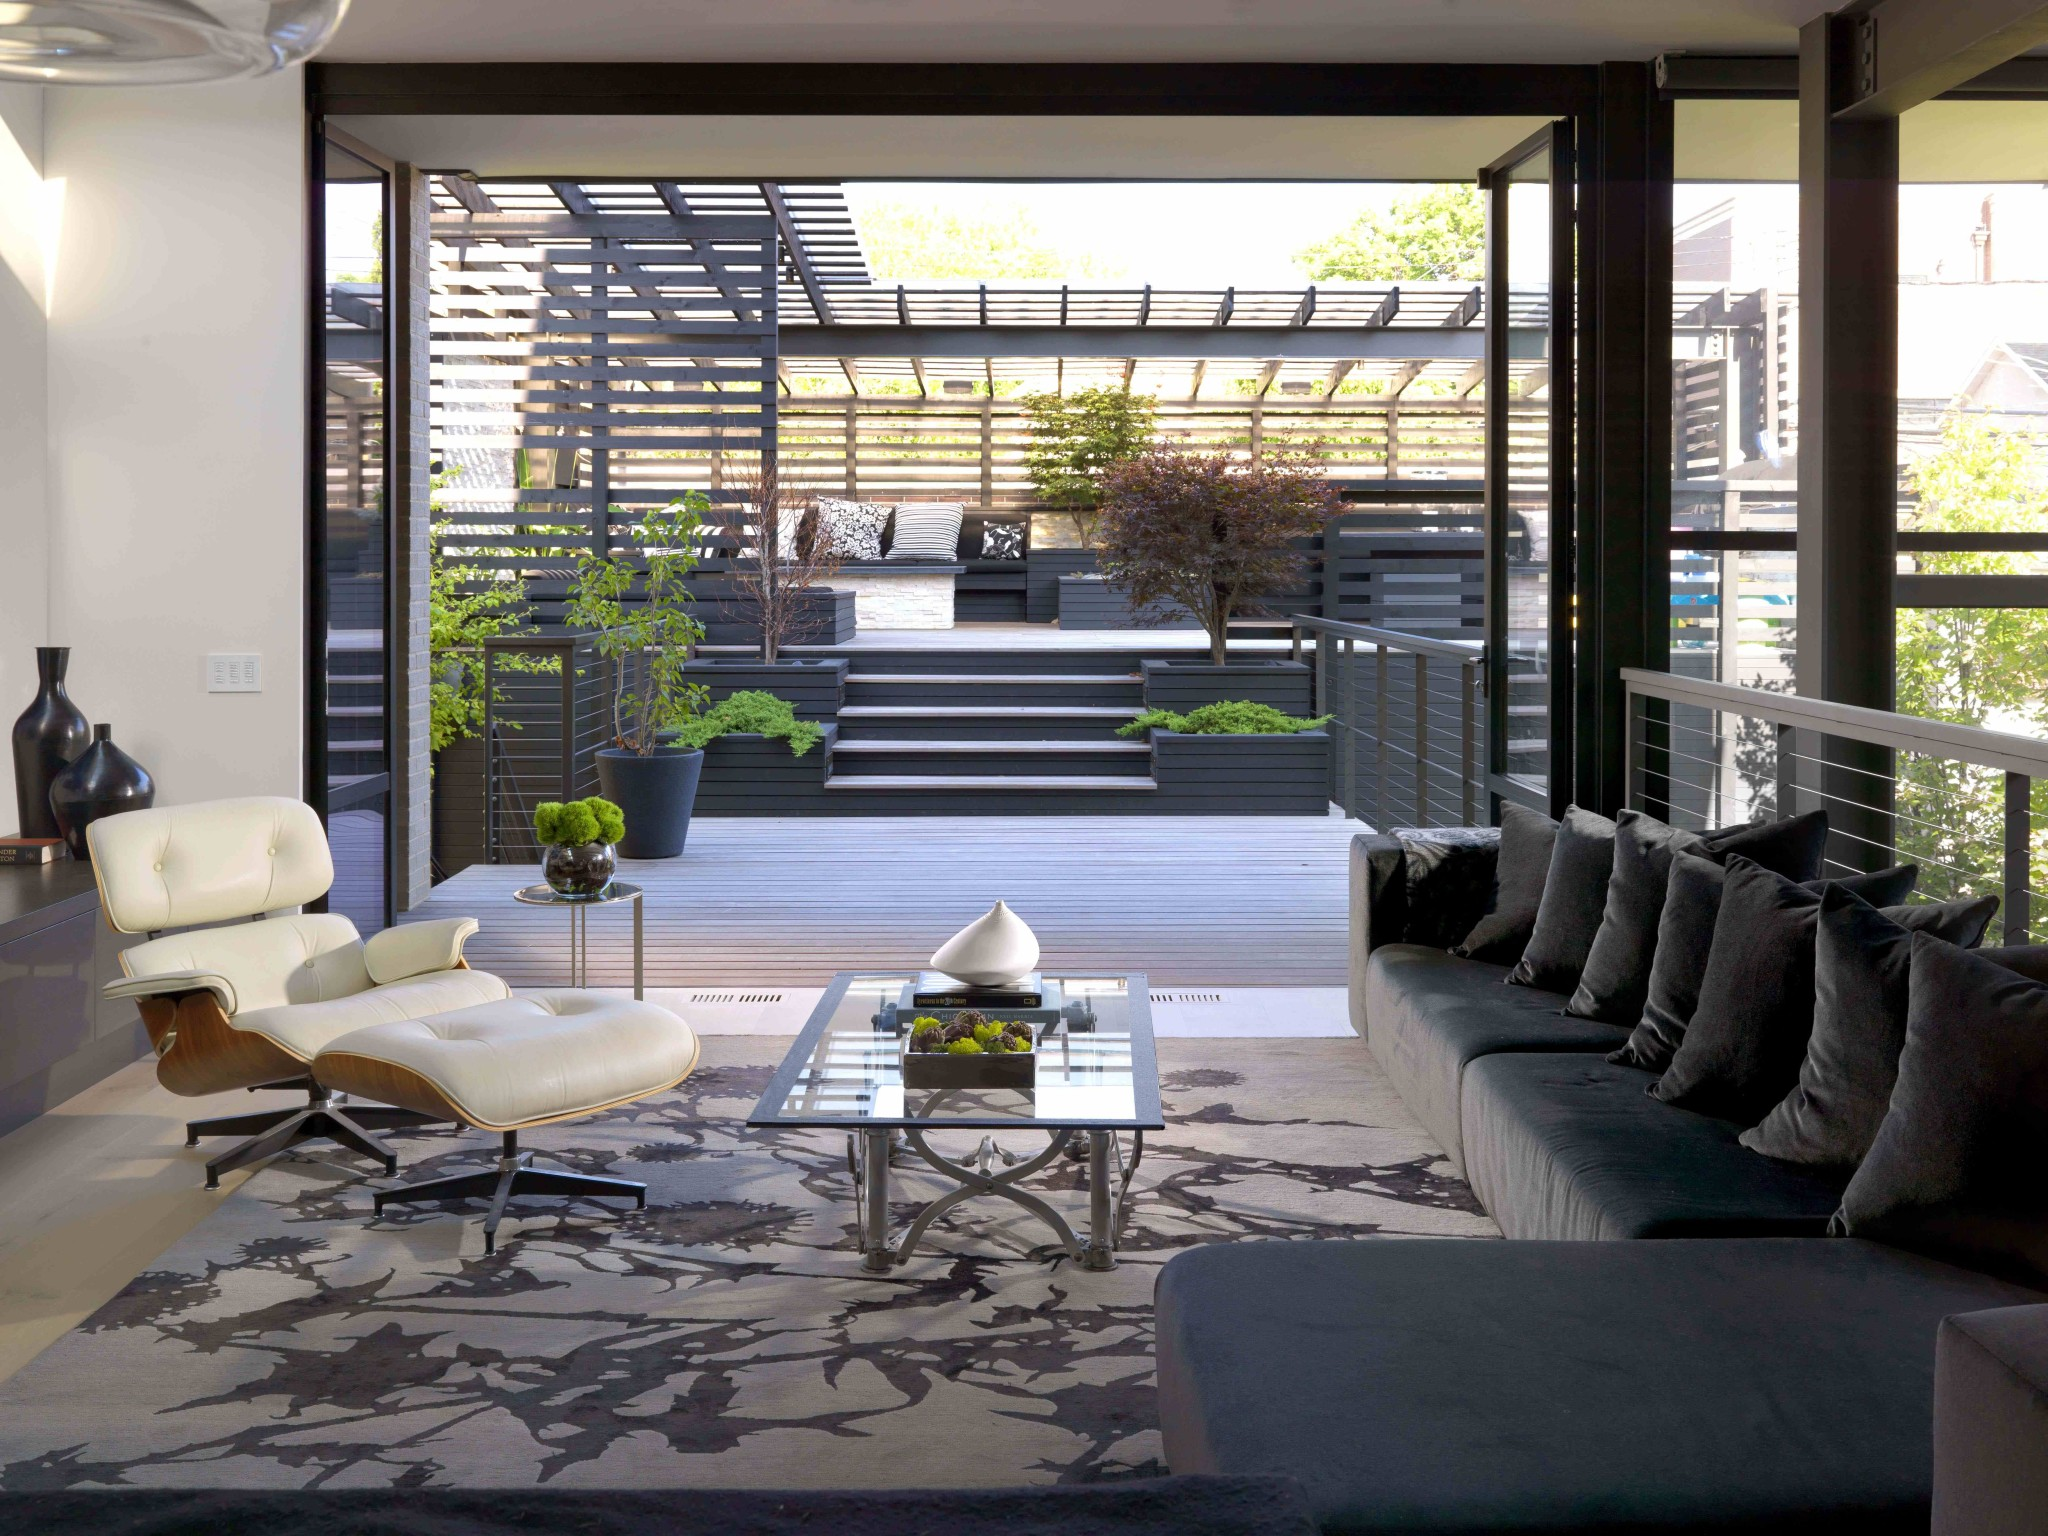 A Contemporary Home Design Features Iconic MidCentury Furniture - Mid century home design